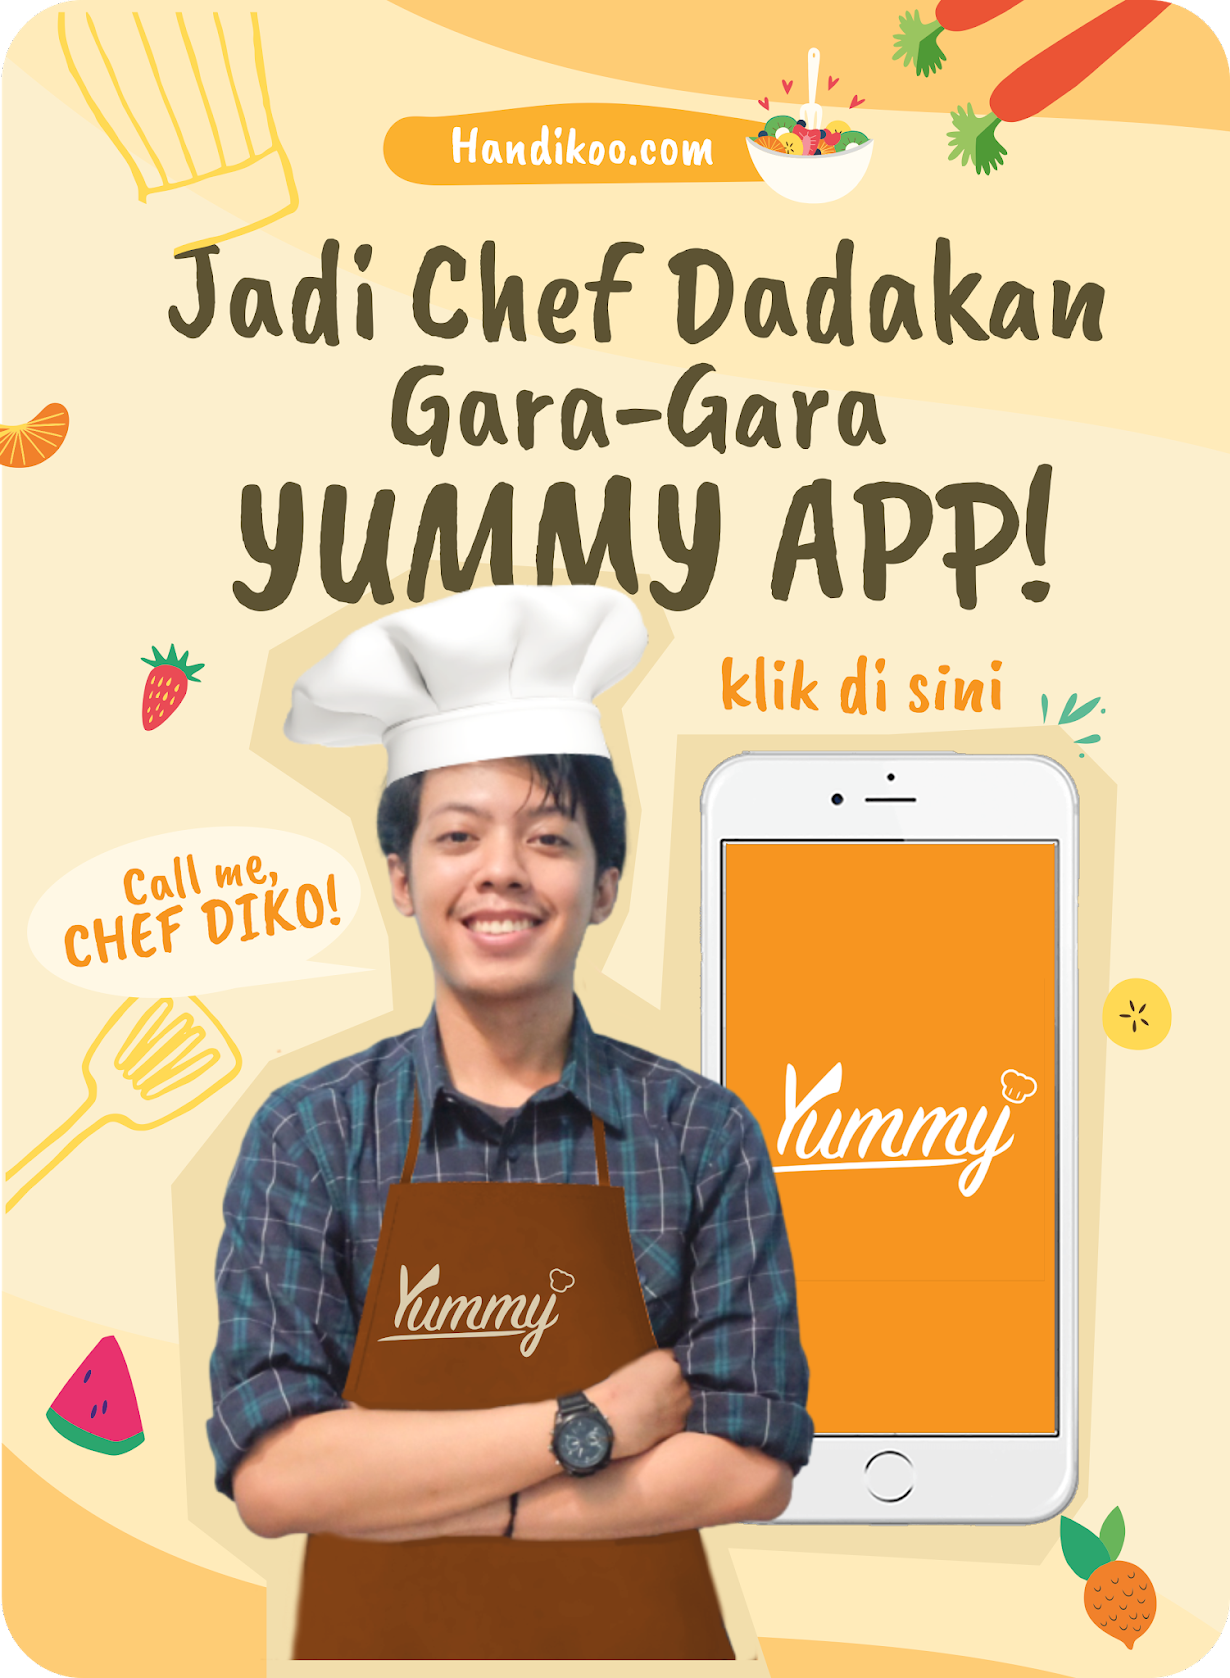 Review Yummy App!